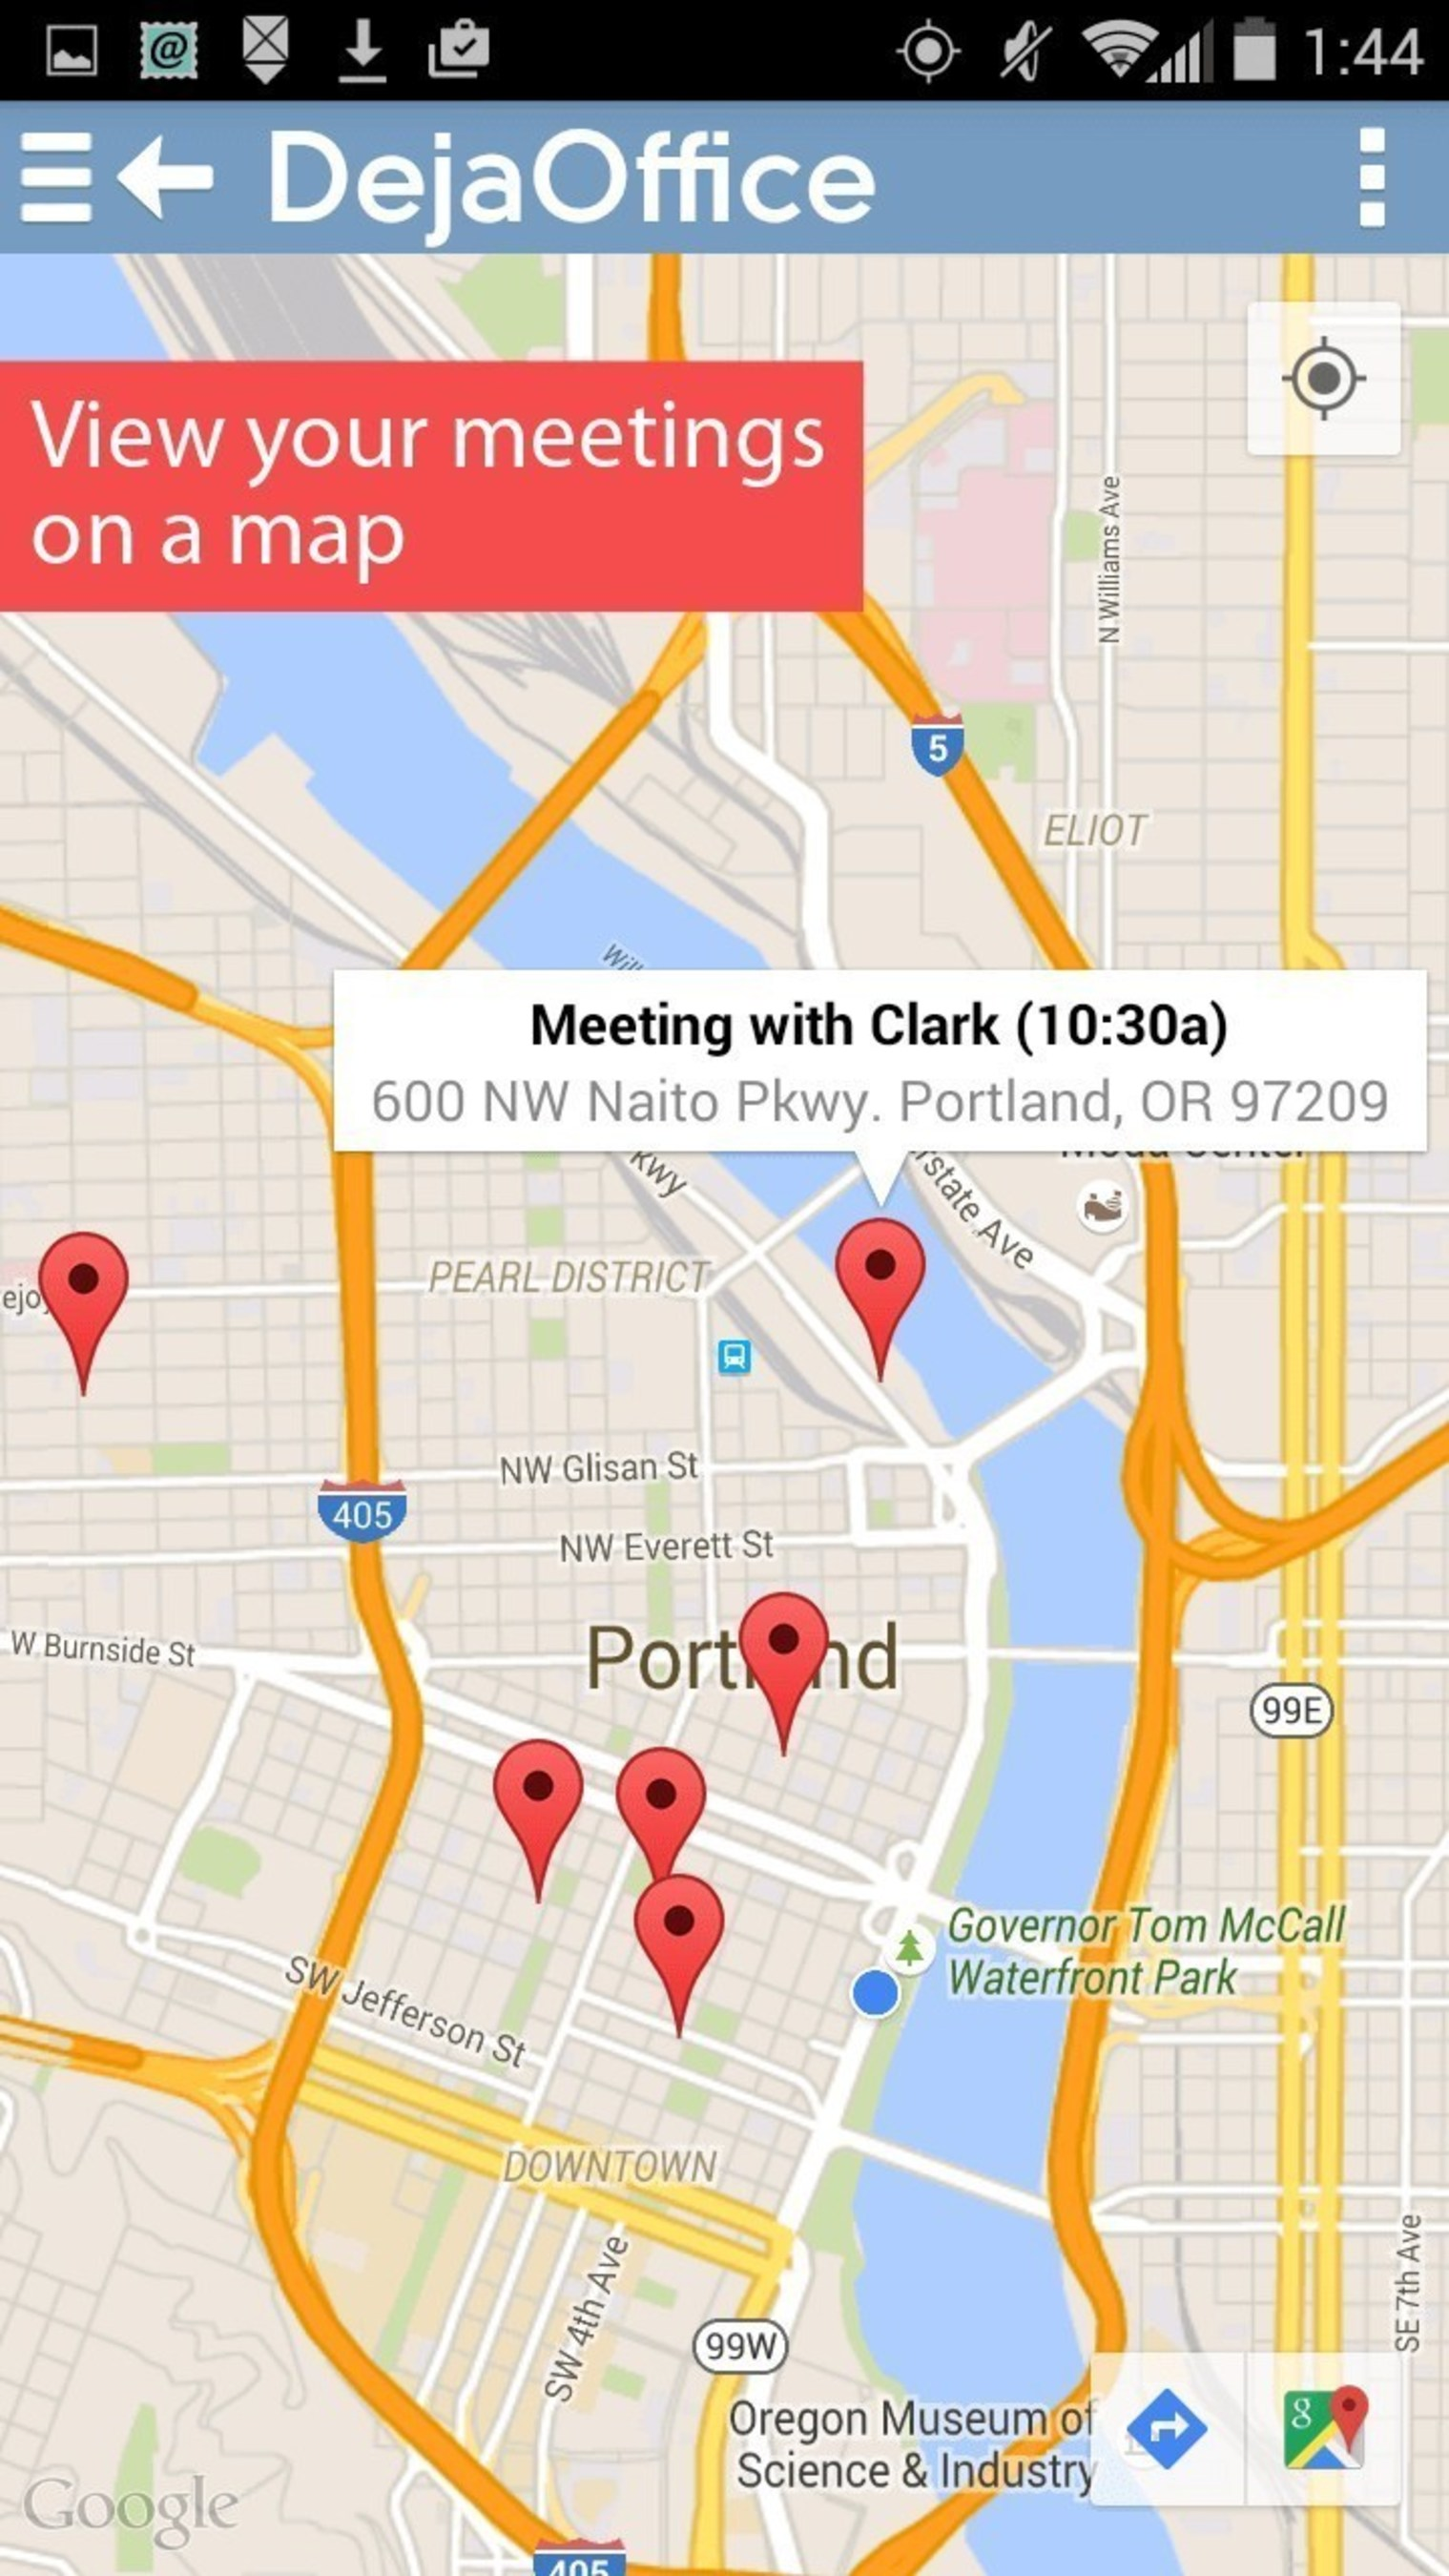 View your meetings on a map